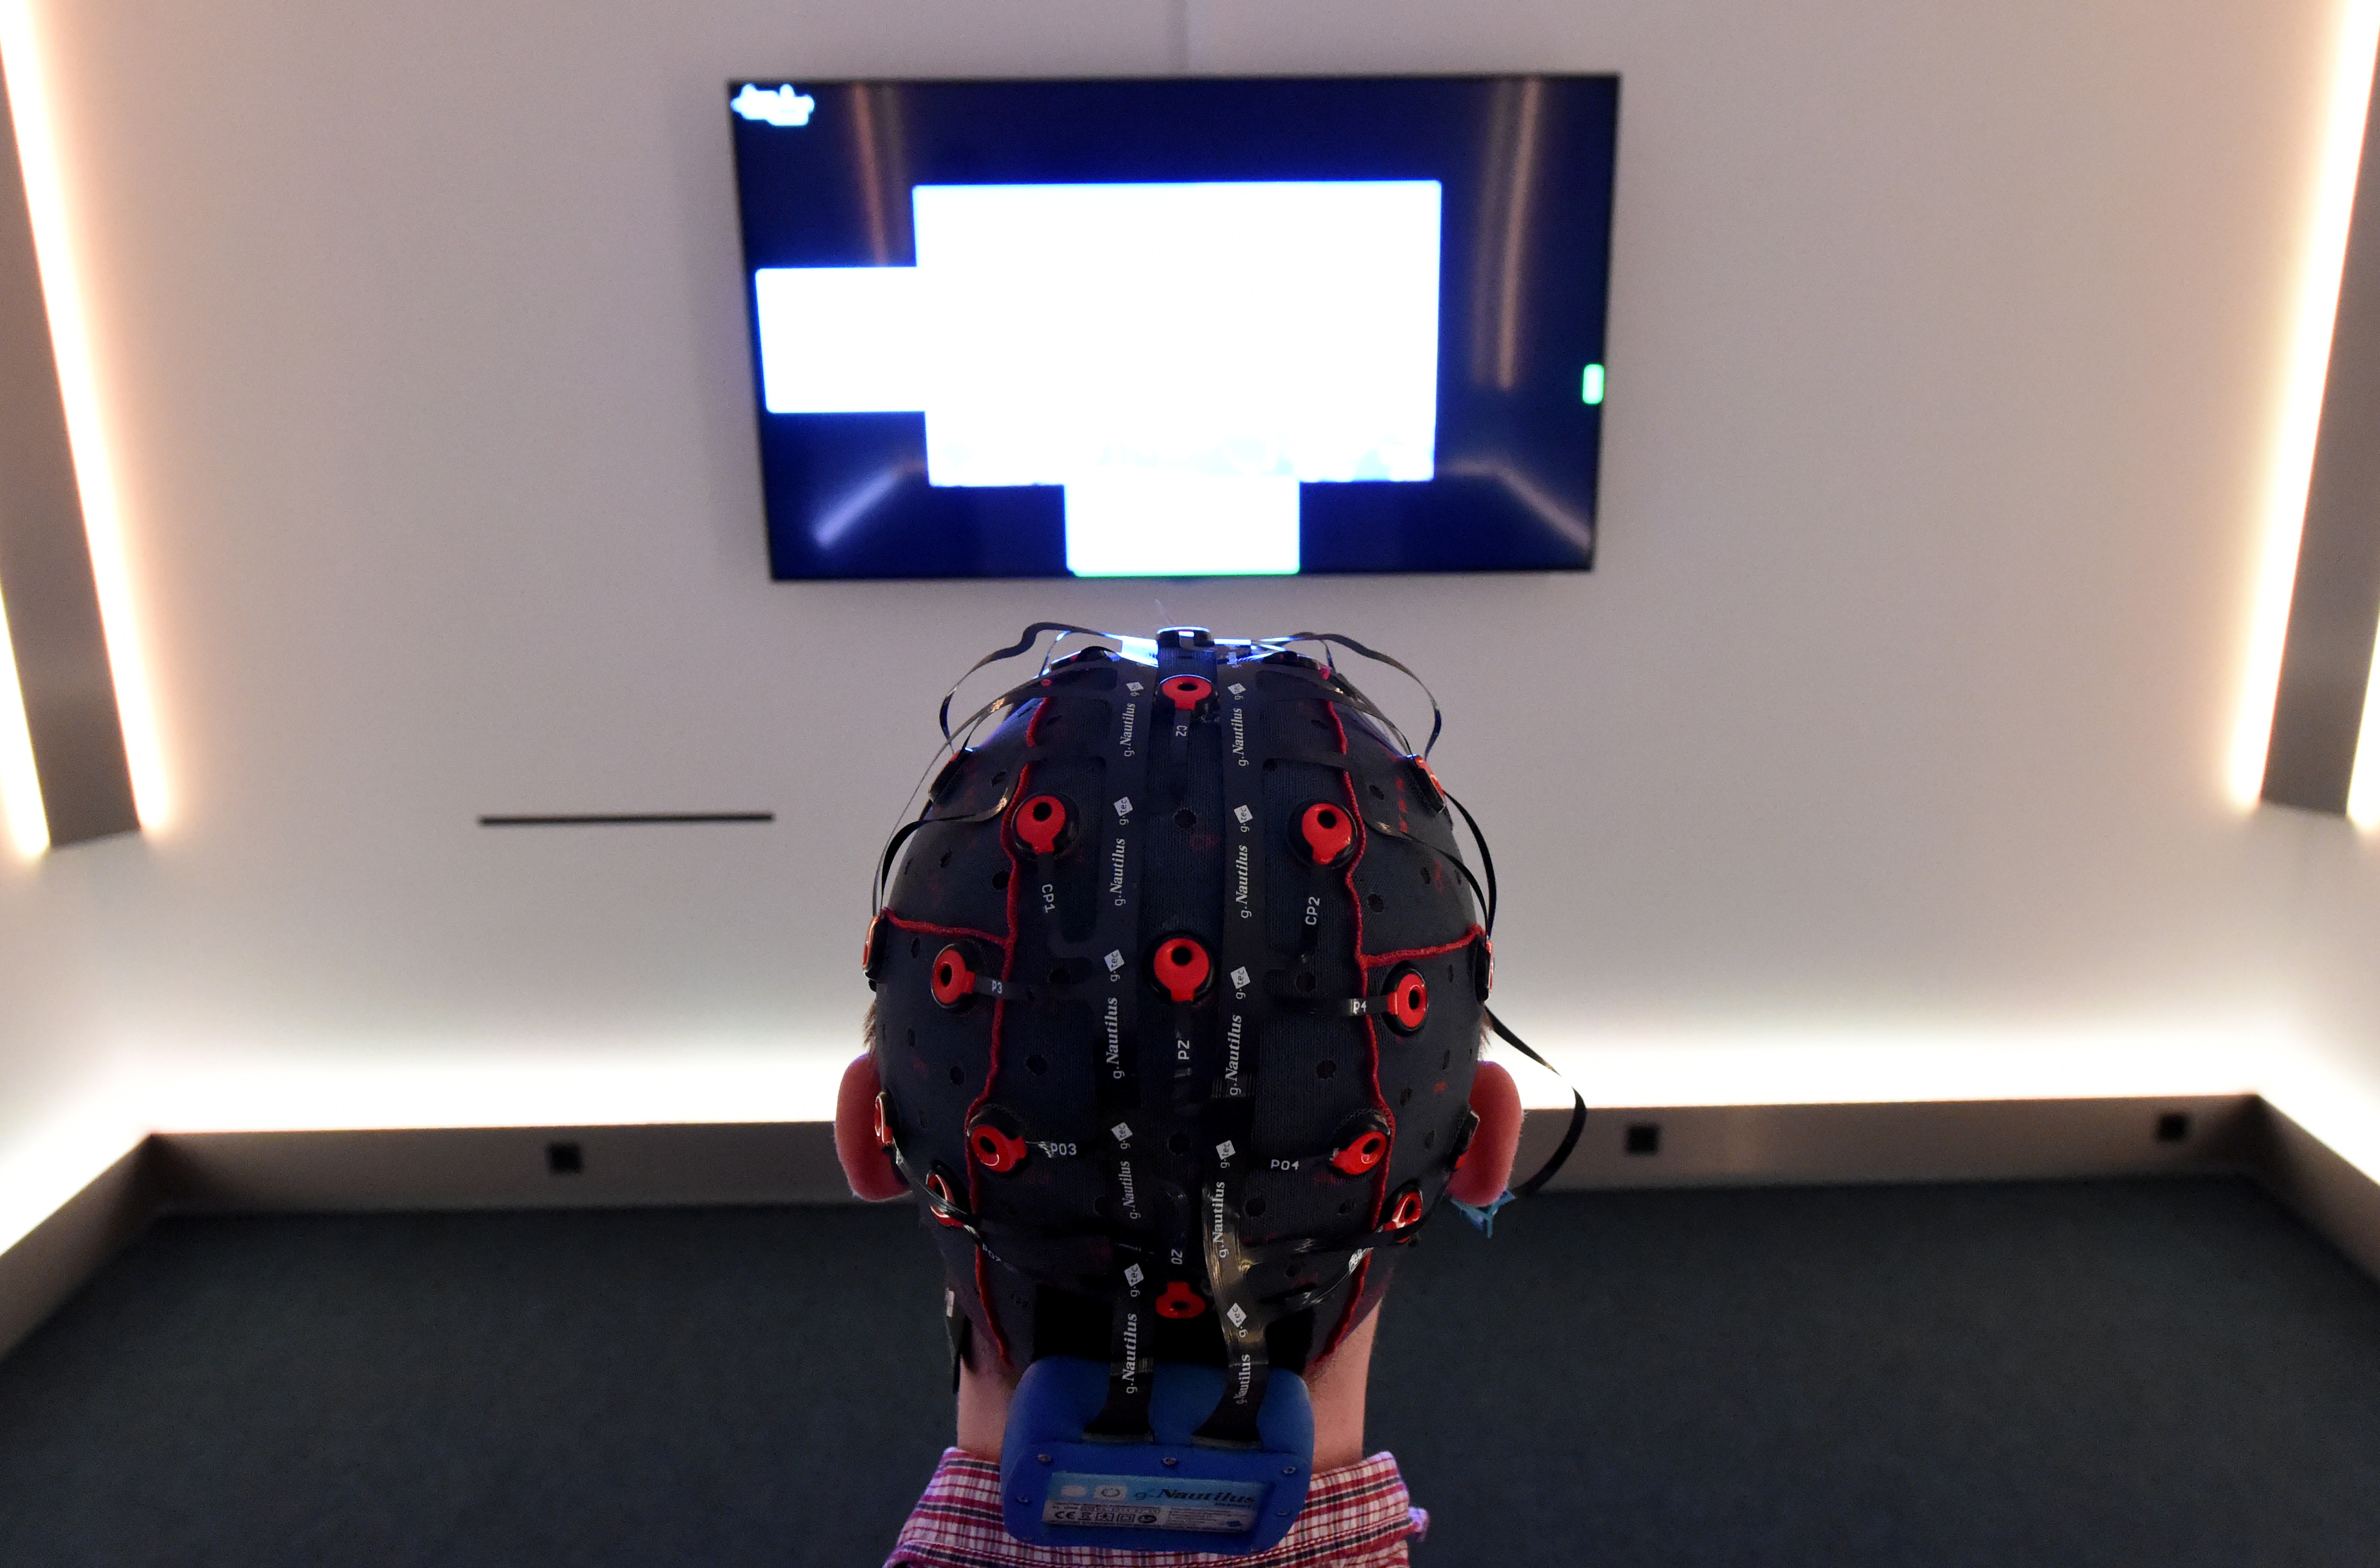 Researcher Jens Reermann wearing a brain-computer interface allowing him to control pictures on a screen with his brain, at Christian-Albrechts-Universitaet in Kiel, Germany, 19 February 2015.